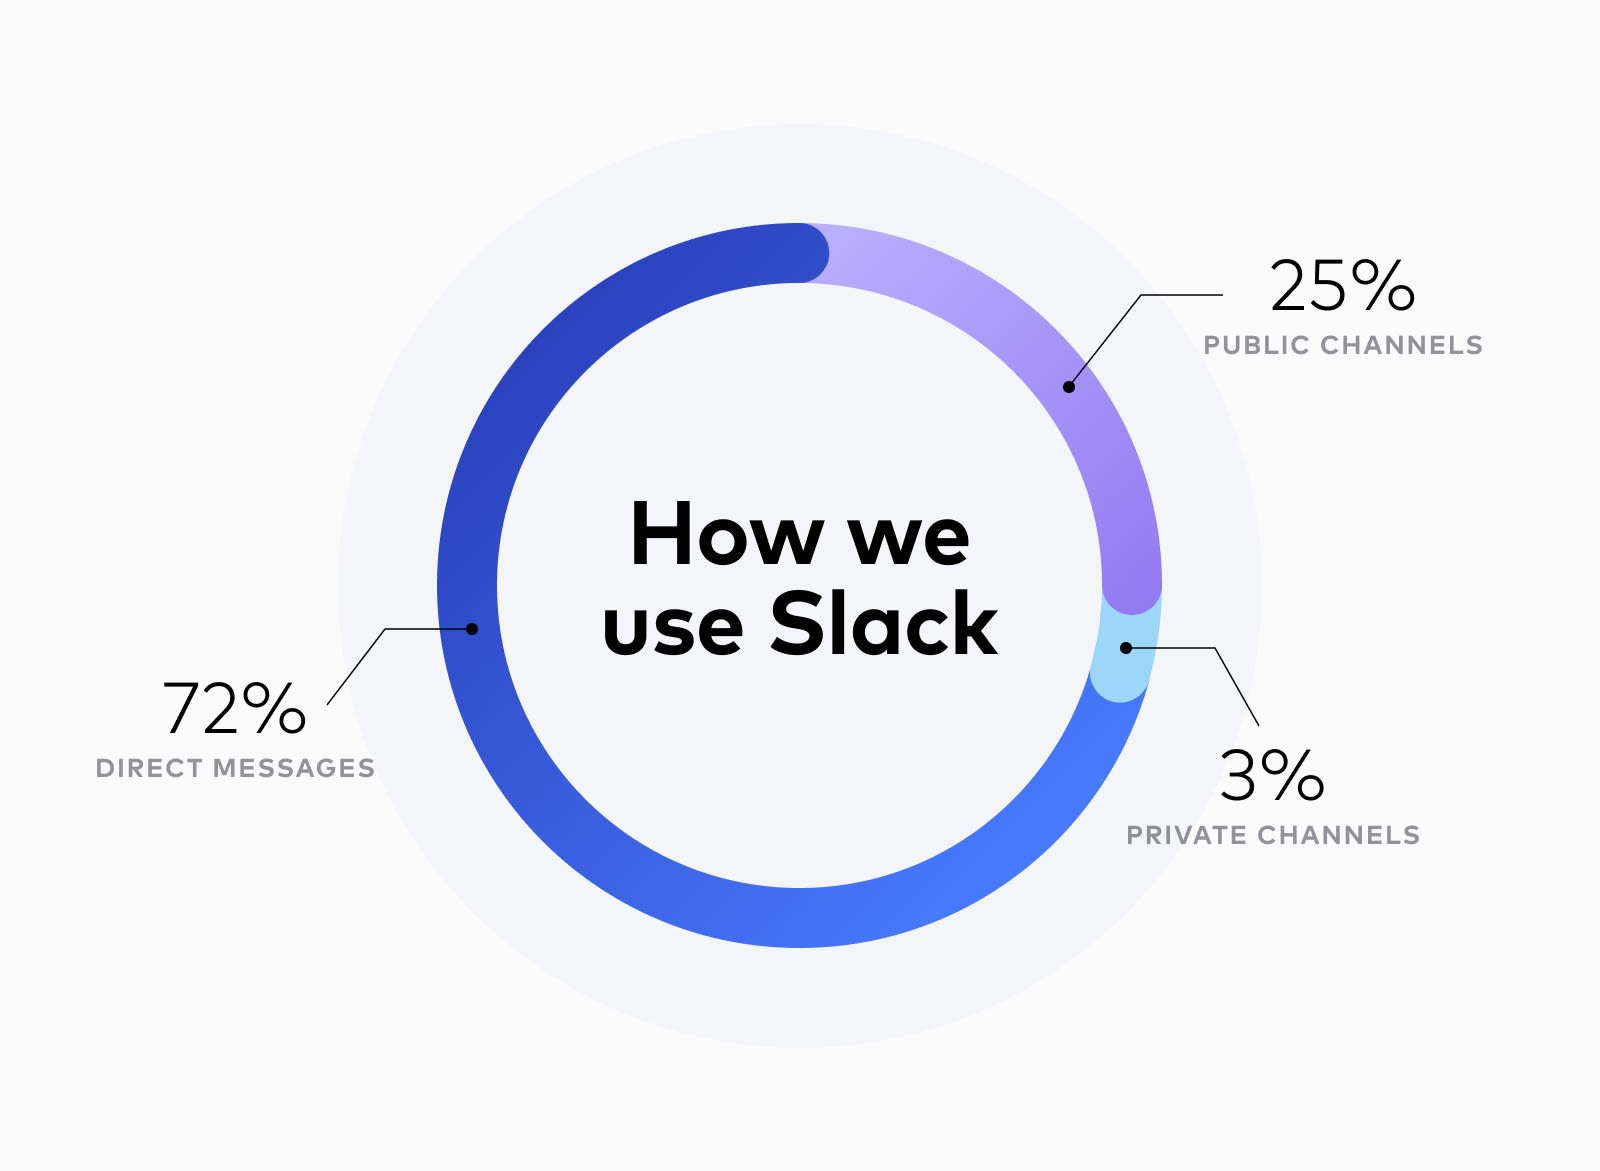 How many messages in Slack are DMs